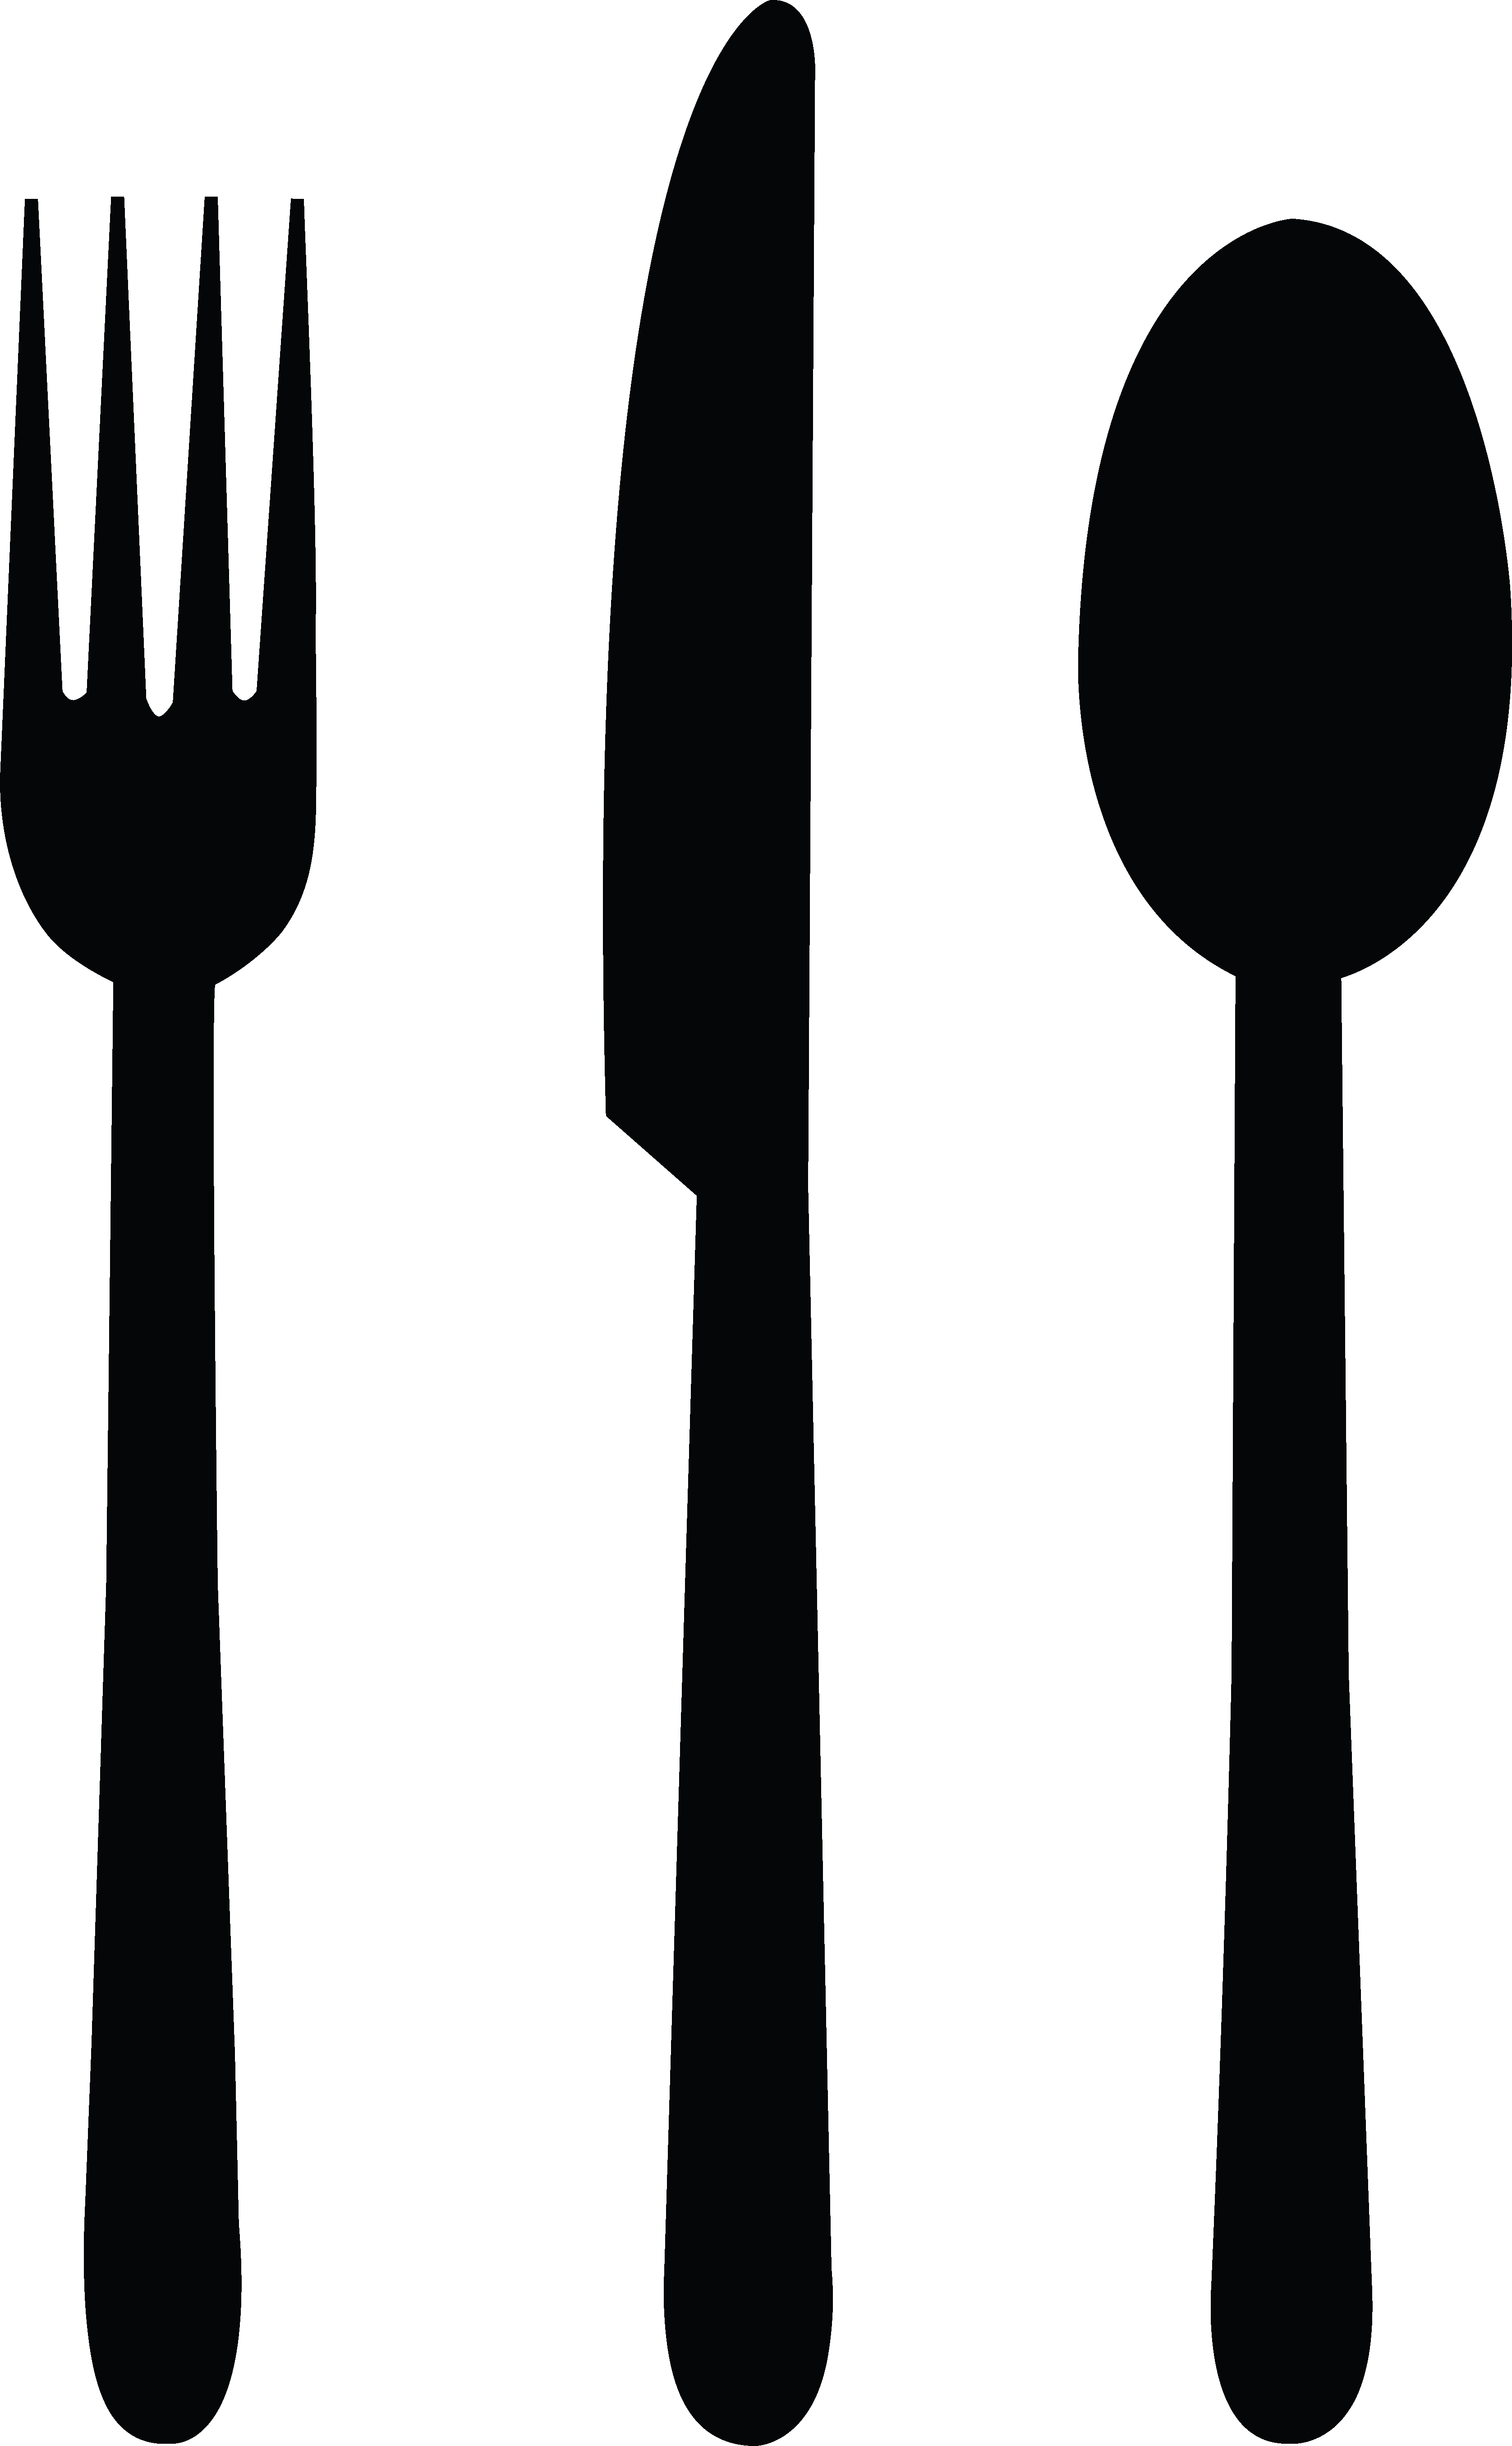 catering clipart knife fork